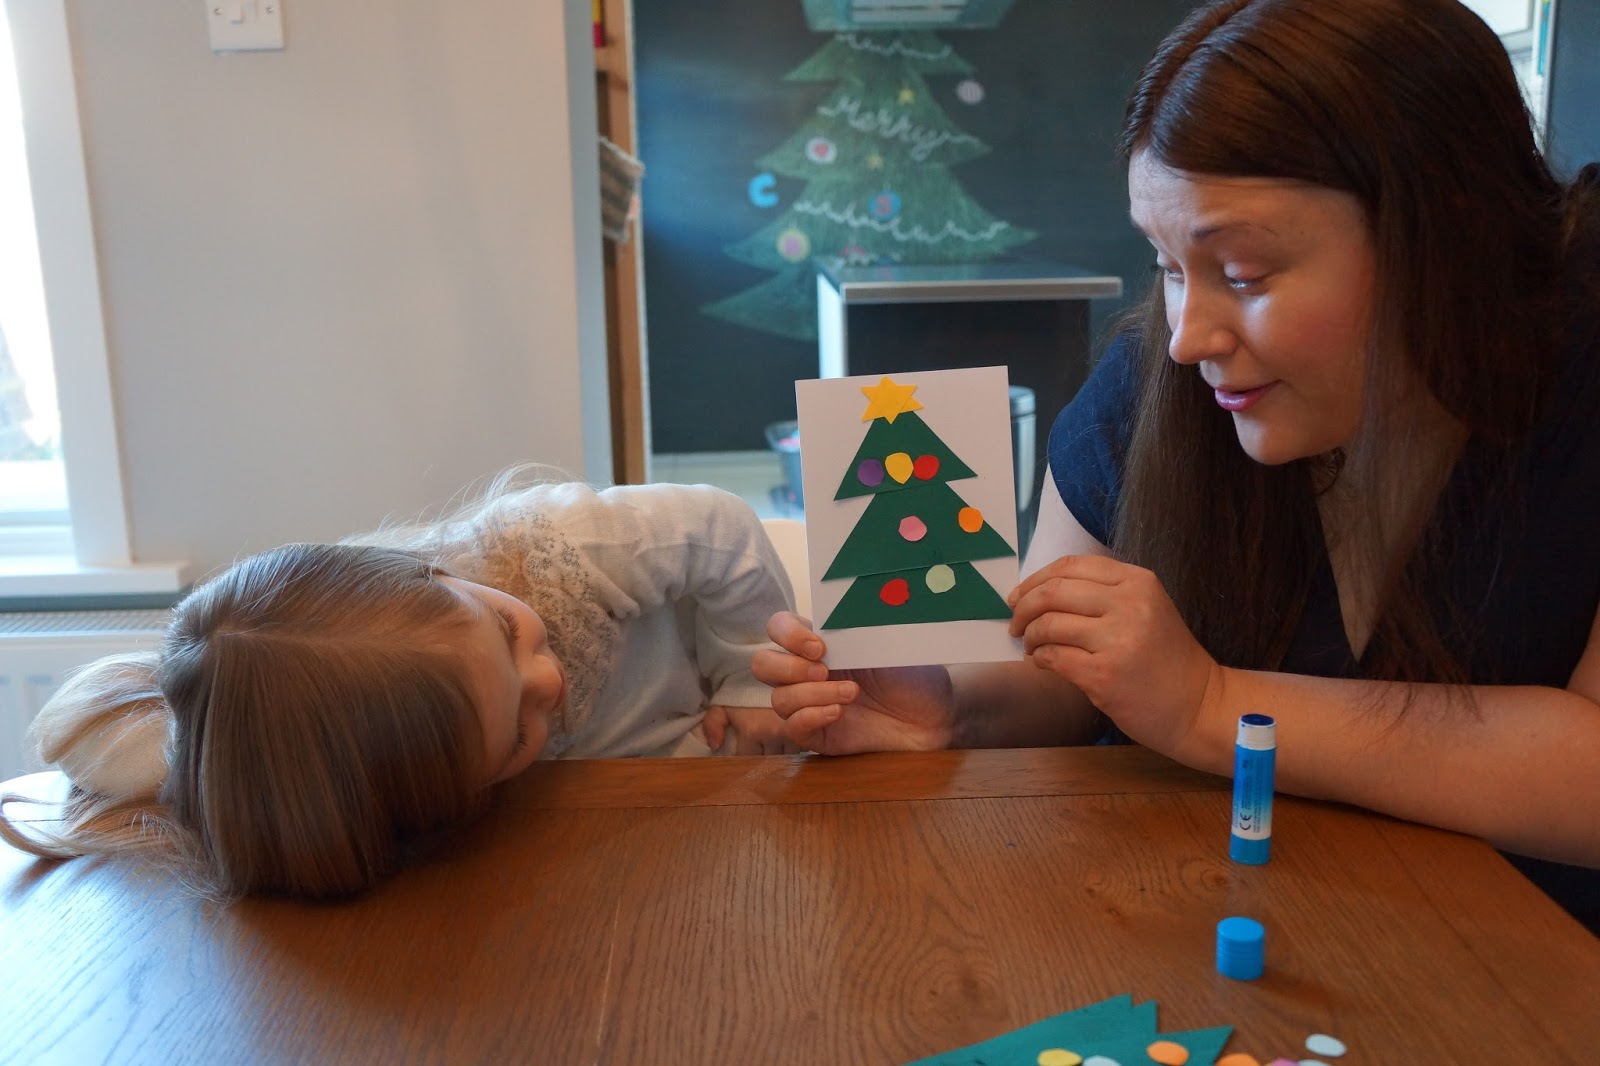 mum showing a christmas tree card to a young daughter